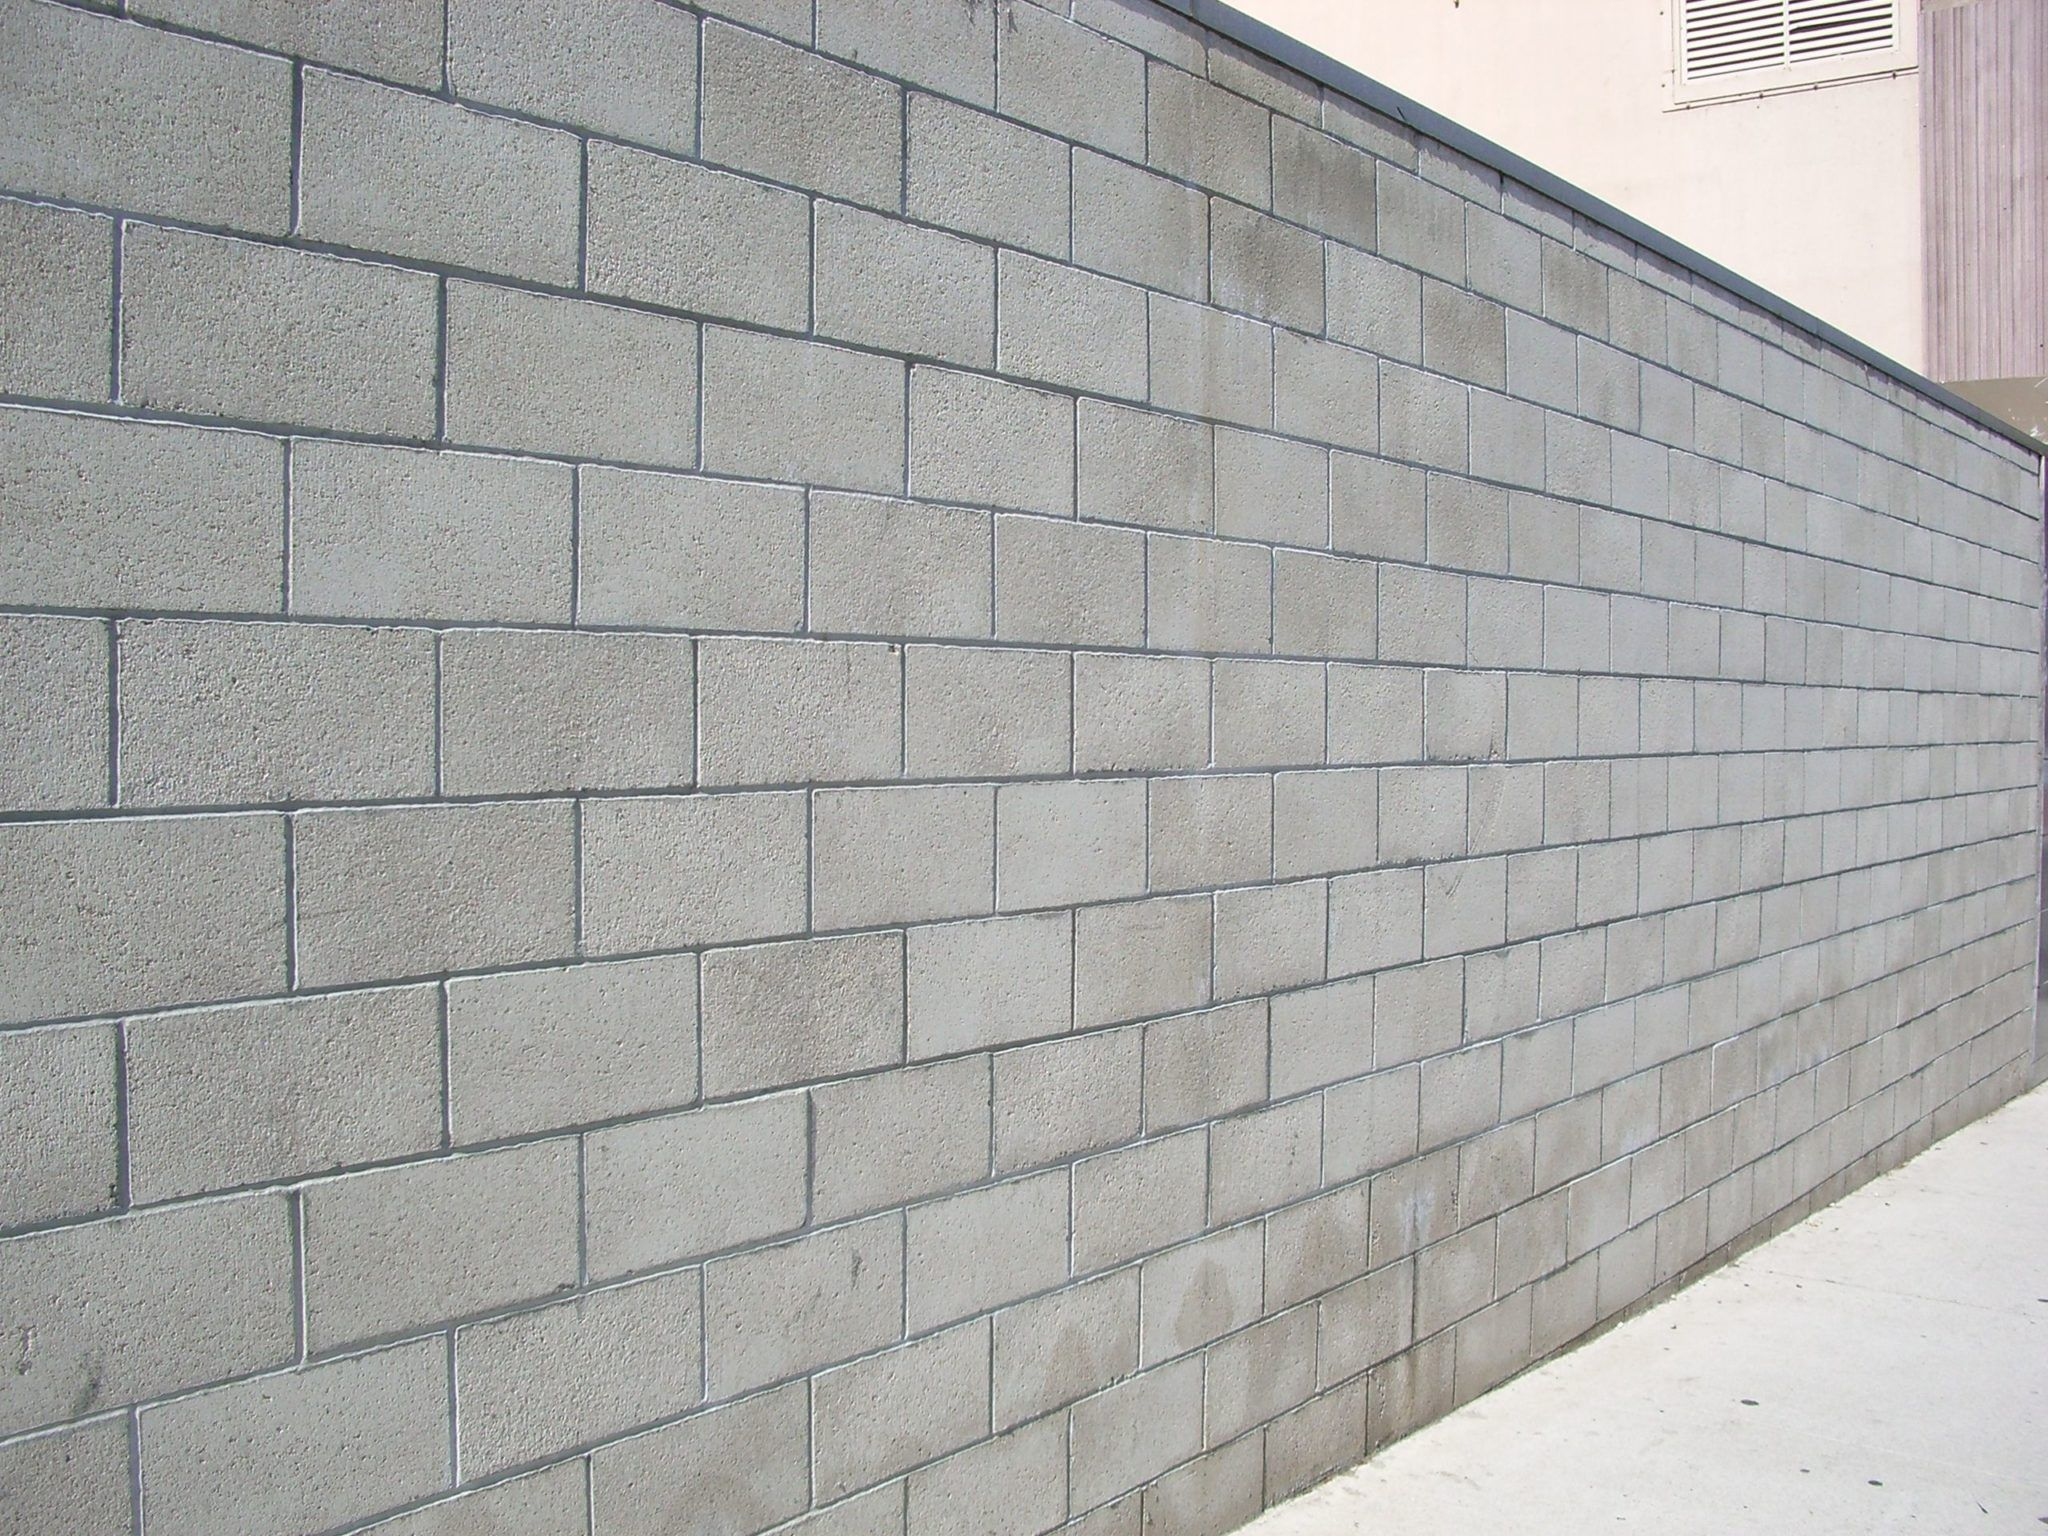 Perimeter Wall 4 Reasons To Invest In A Perimeter Wall In 2020 Wall Perimeter Picture Wall